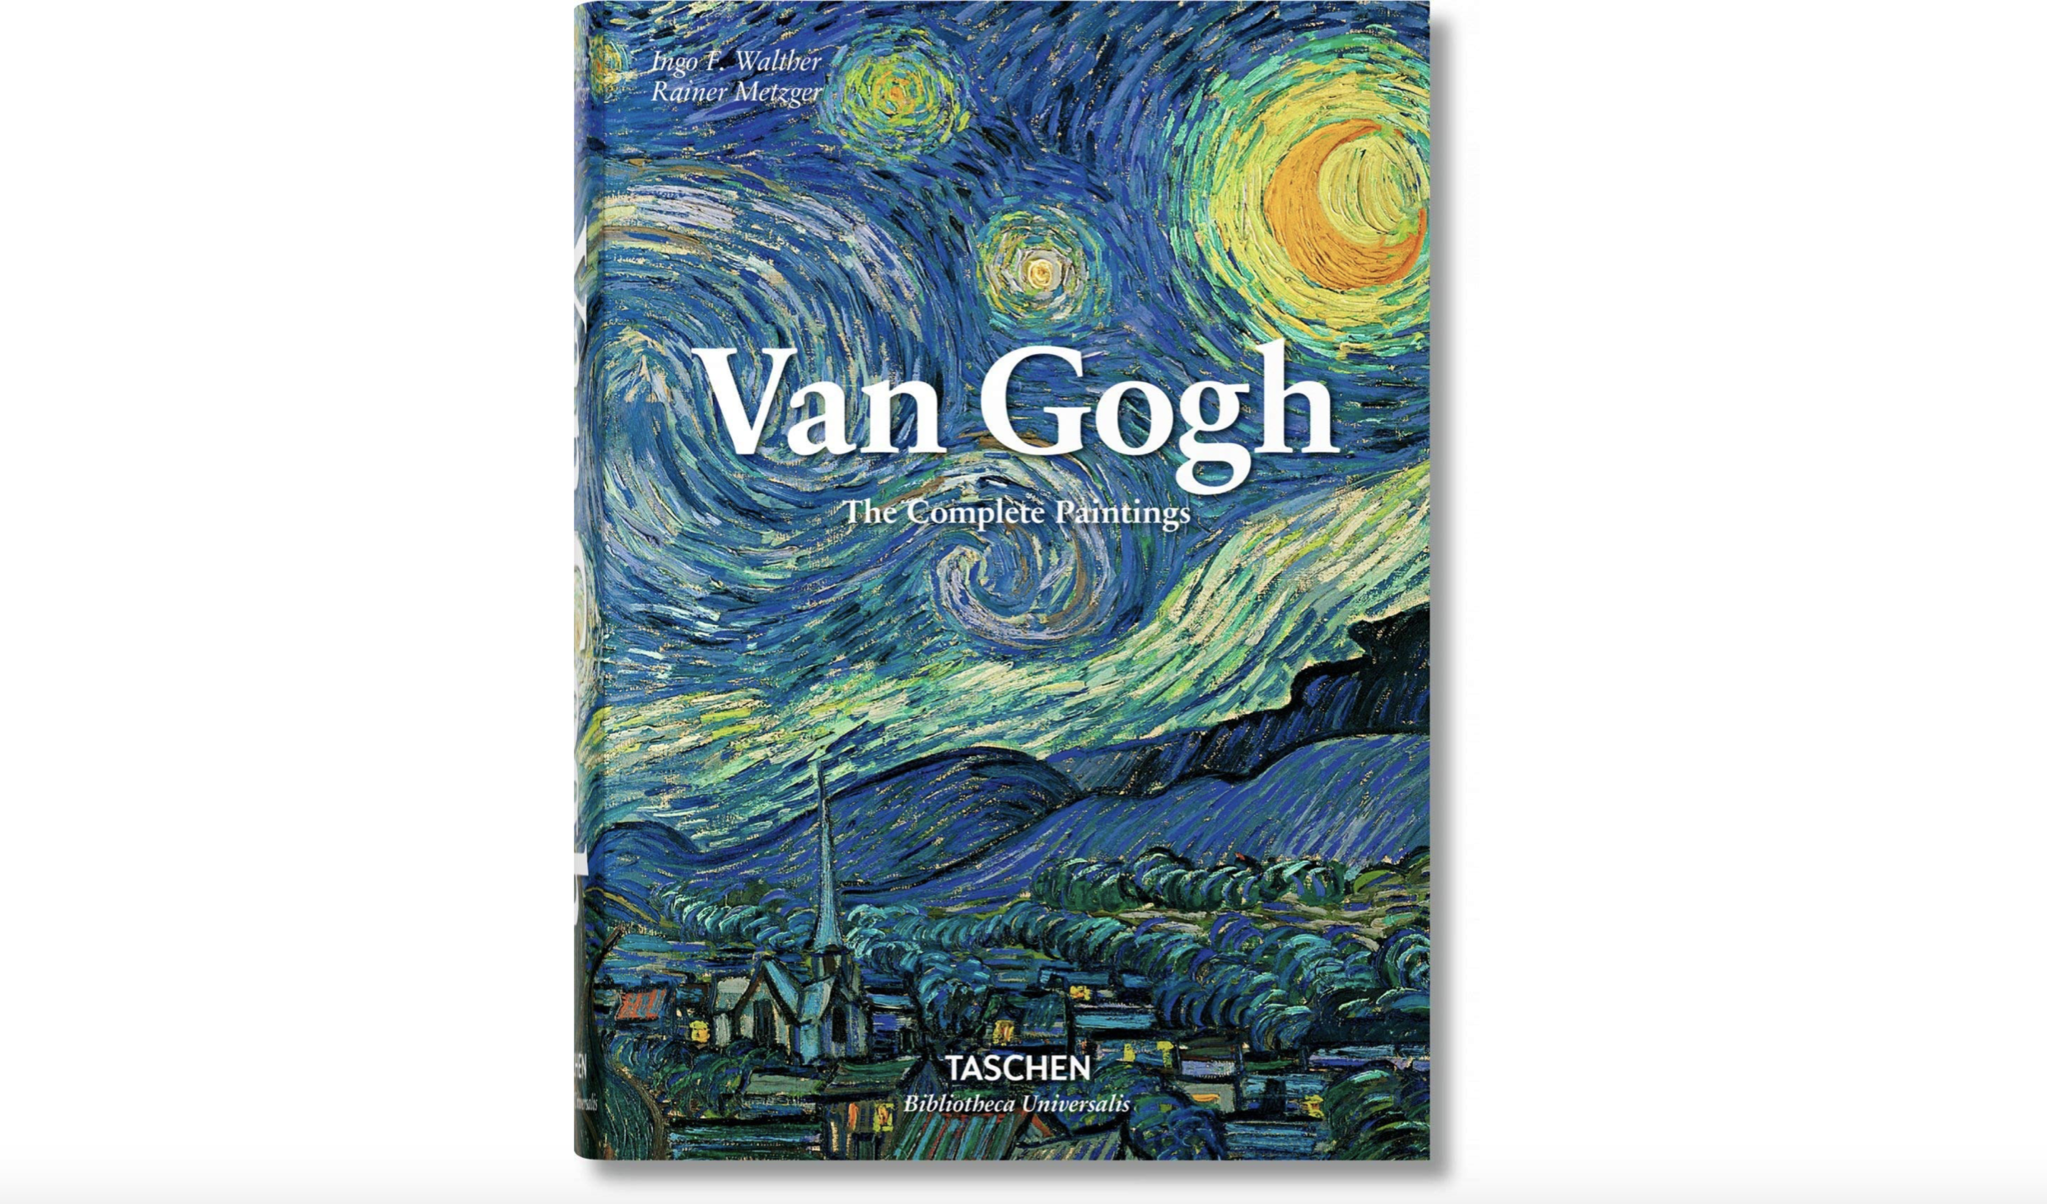 Taschen Van Gogh The Complete Paintings